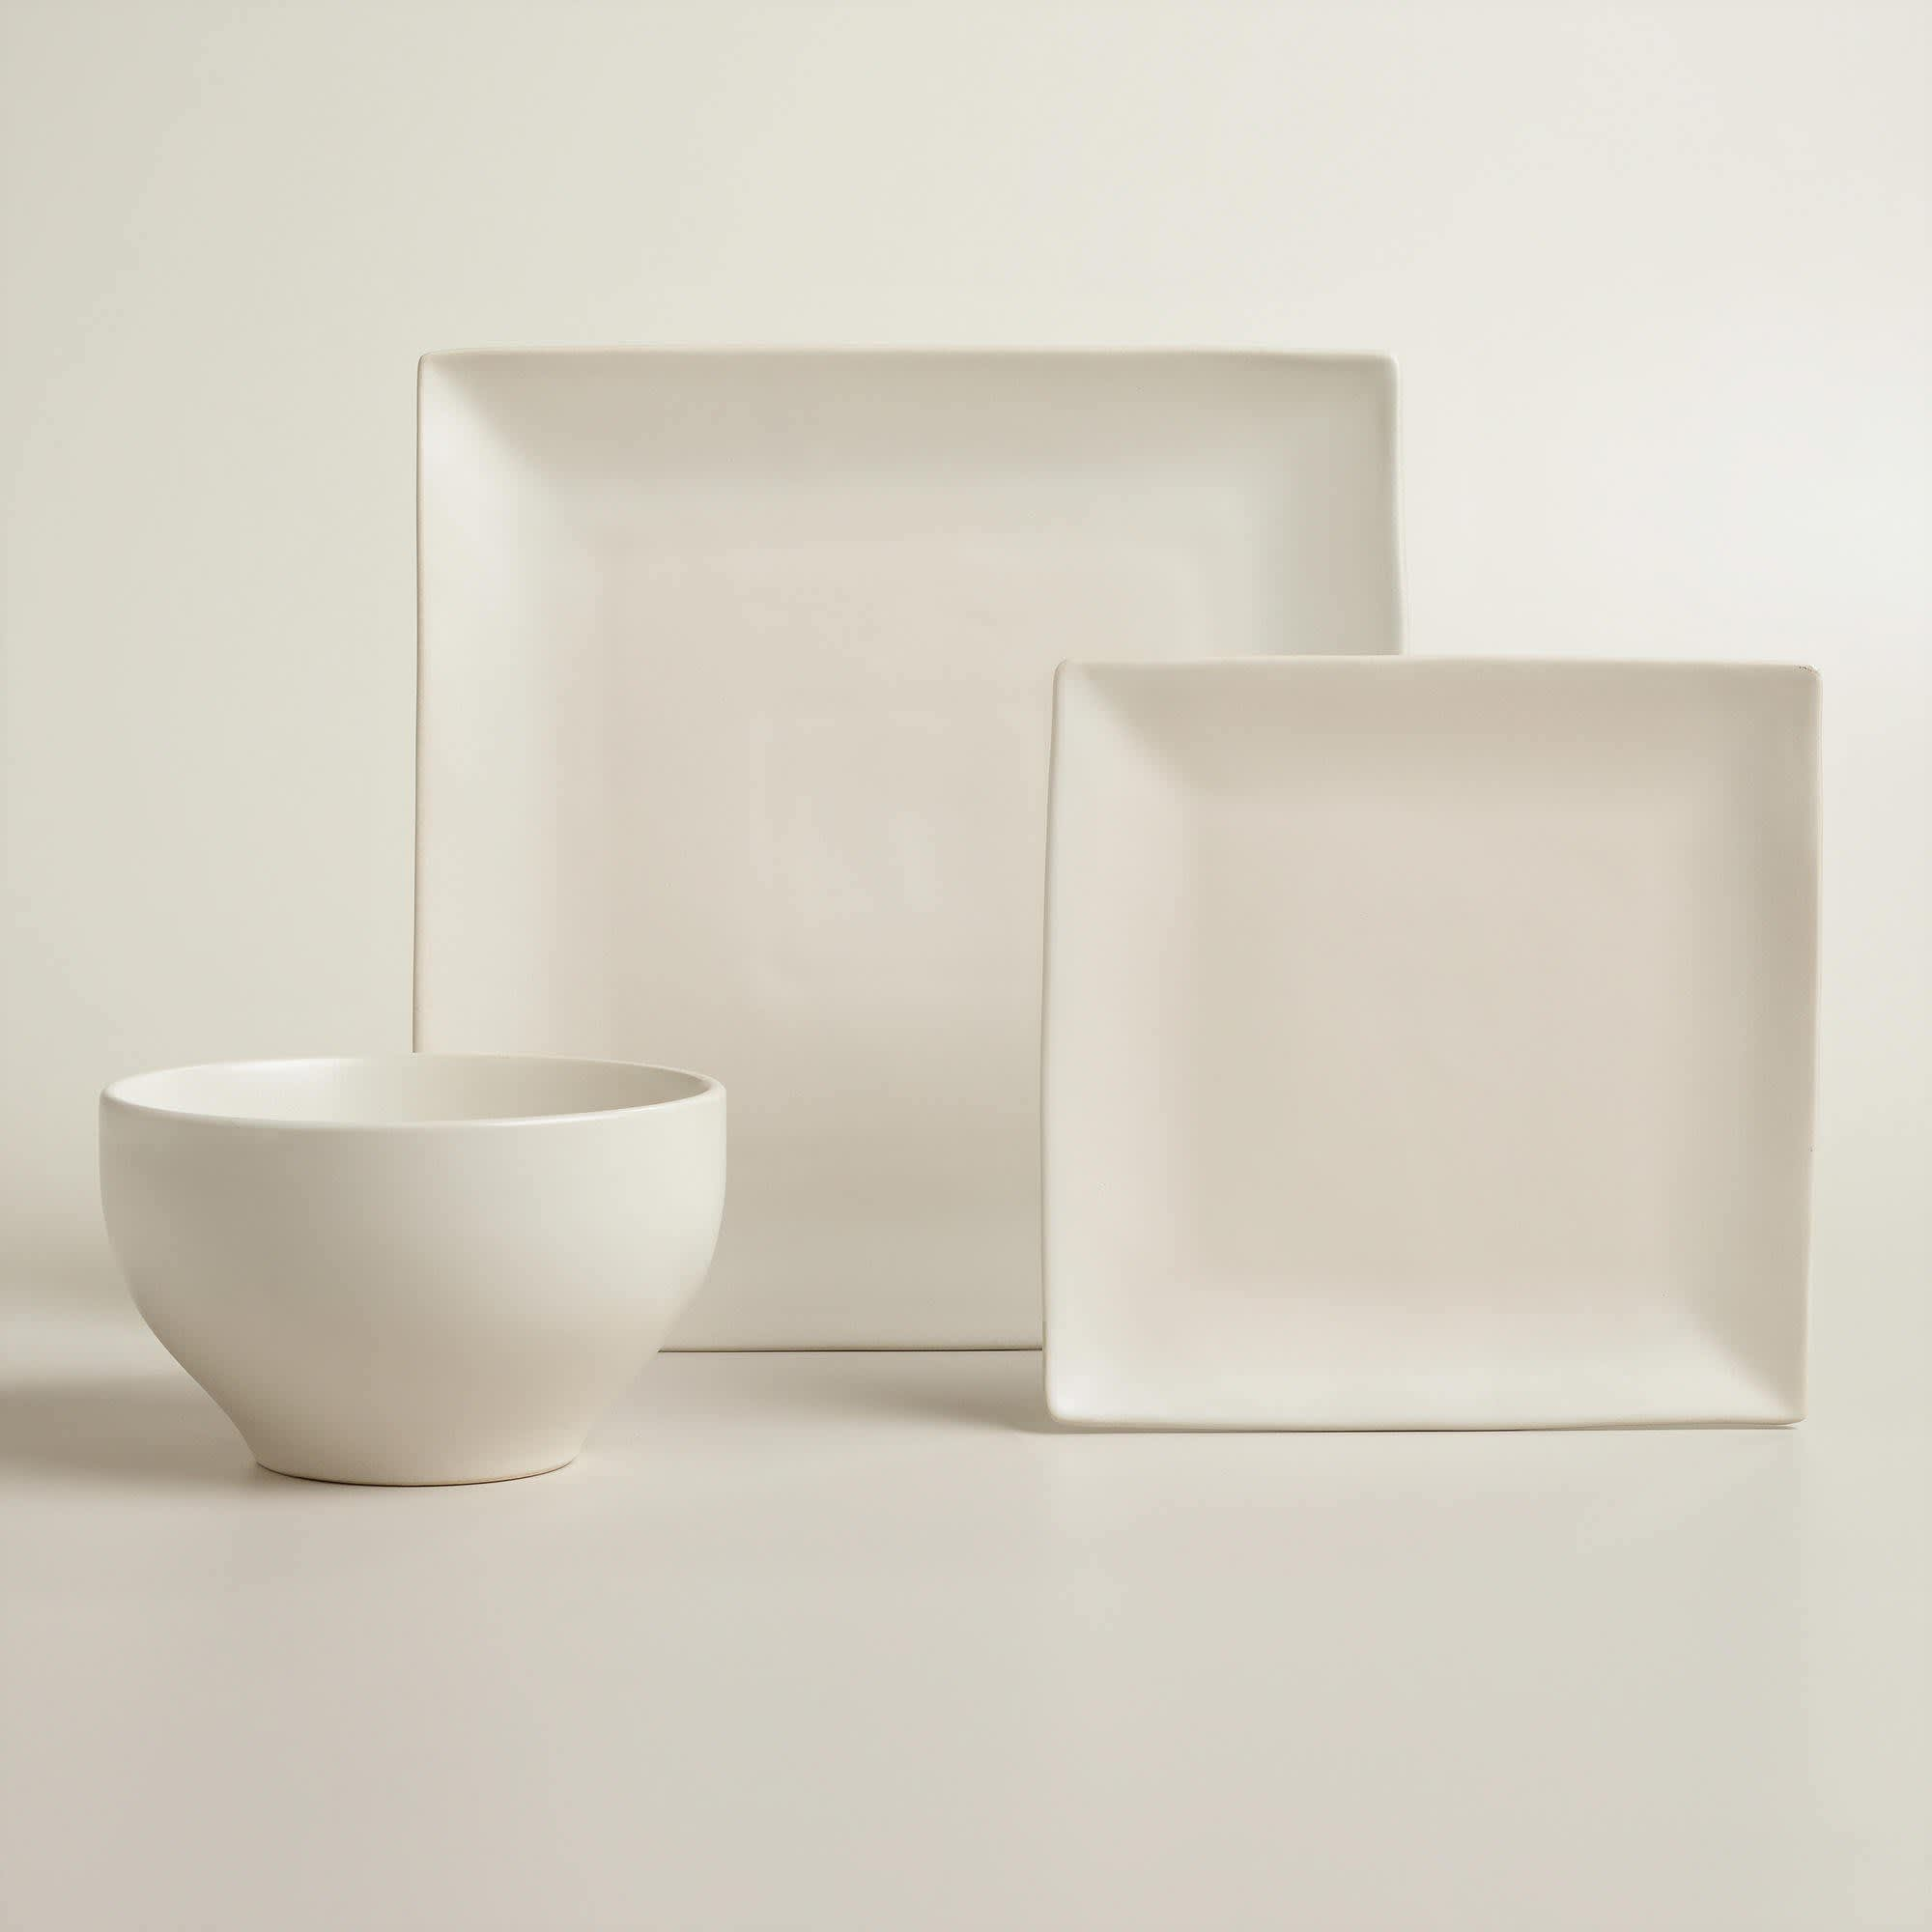 10 New Dinnerware Sets That Deserve a Place at the Table: gallery image 6